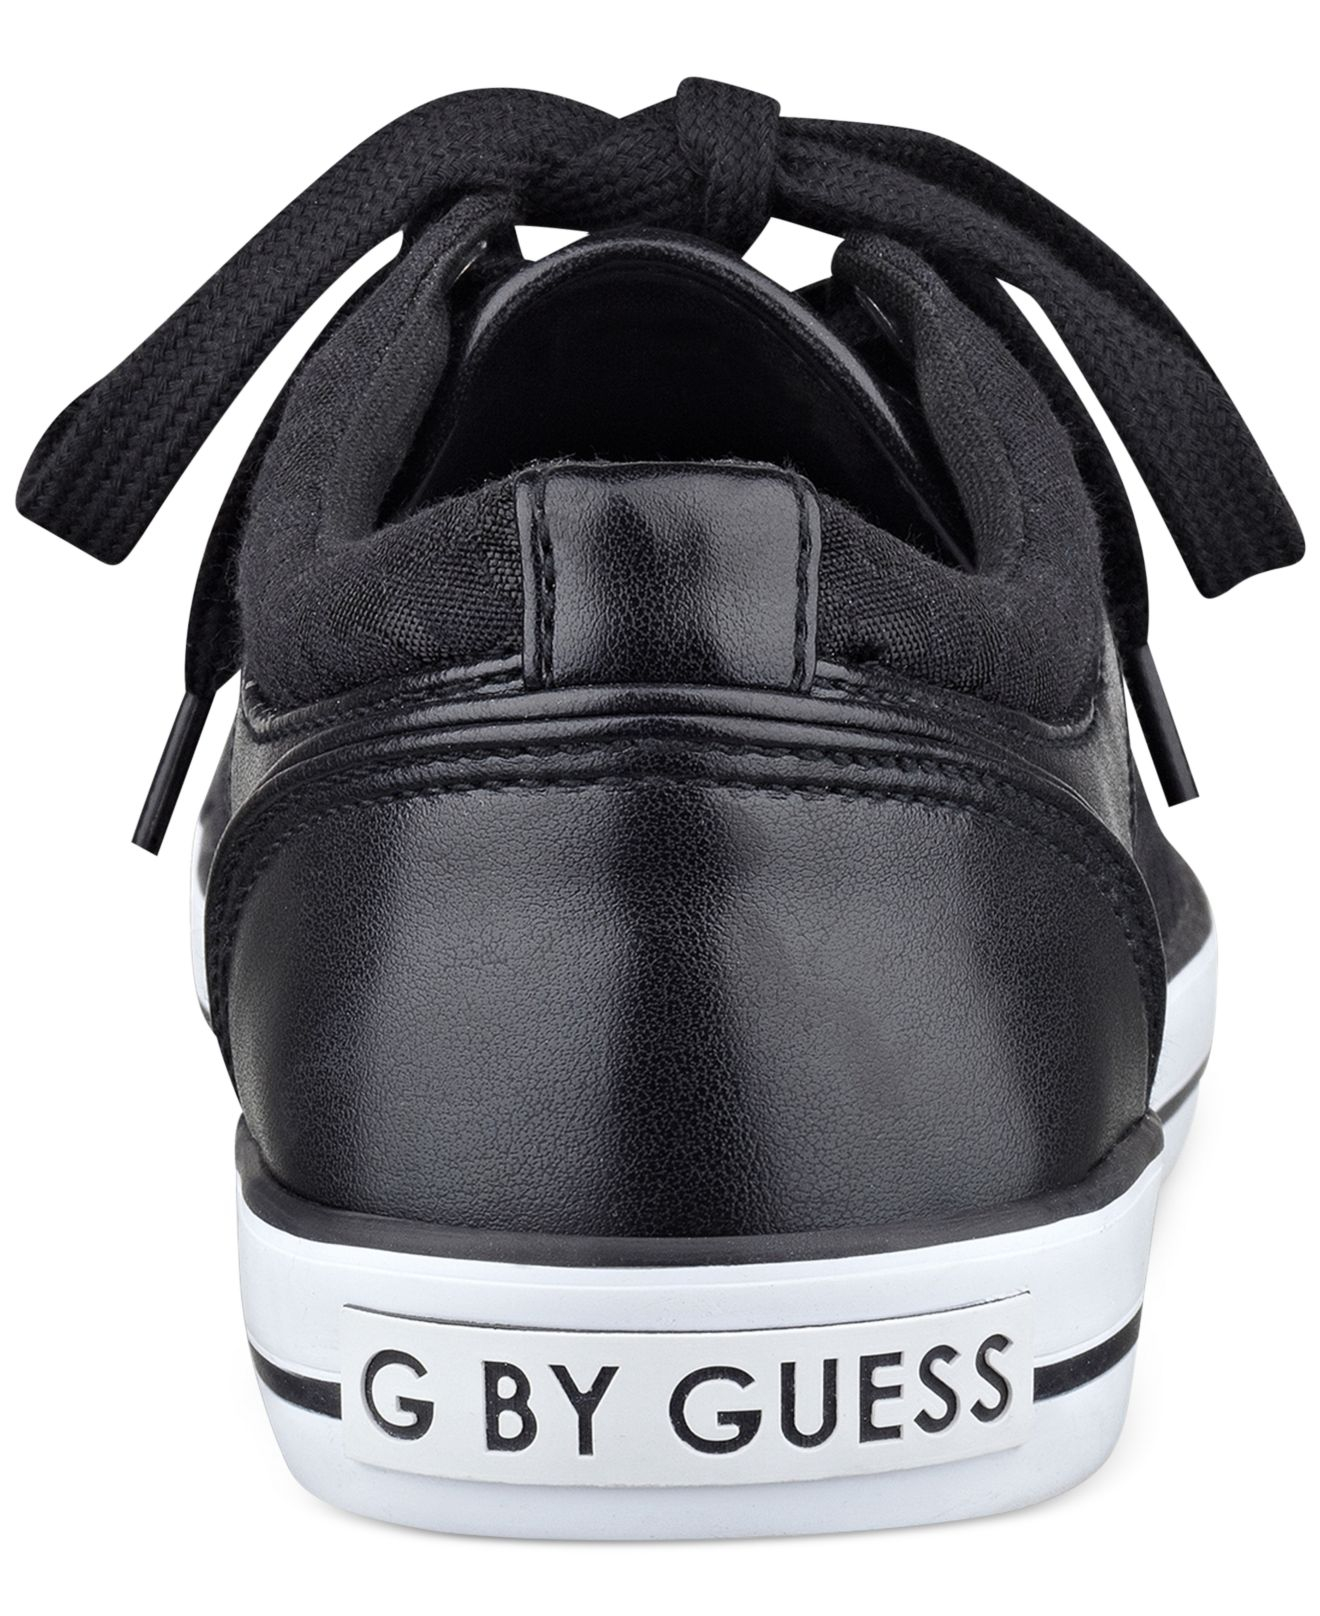 by Guess   Black...G By Guess Logo